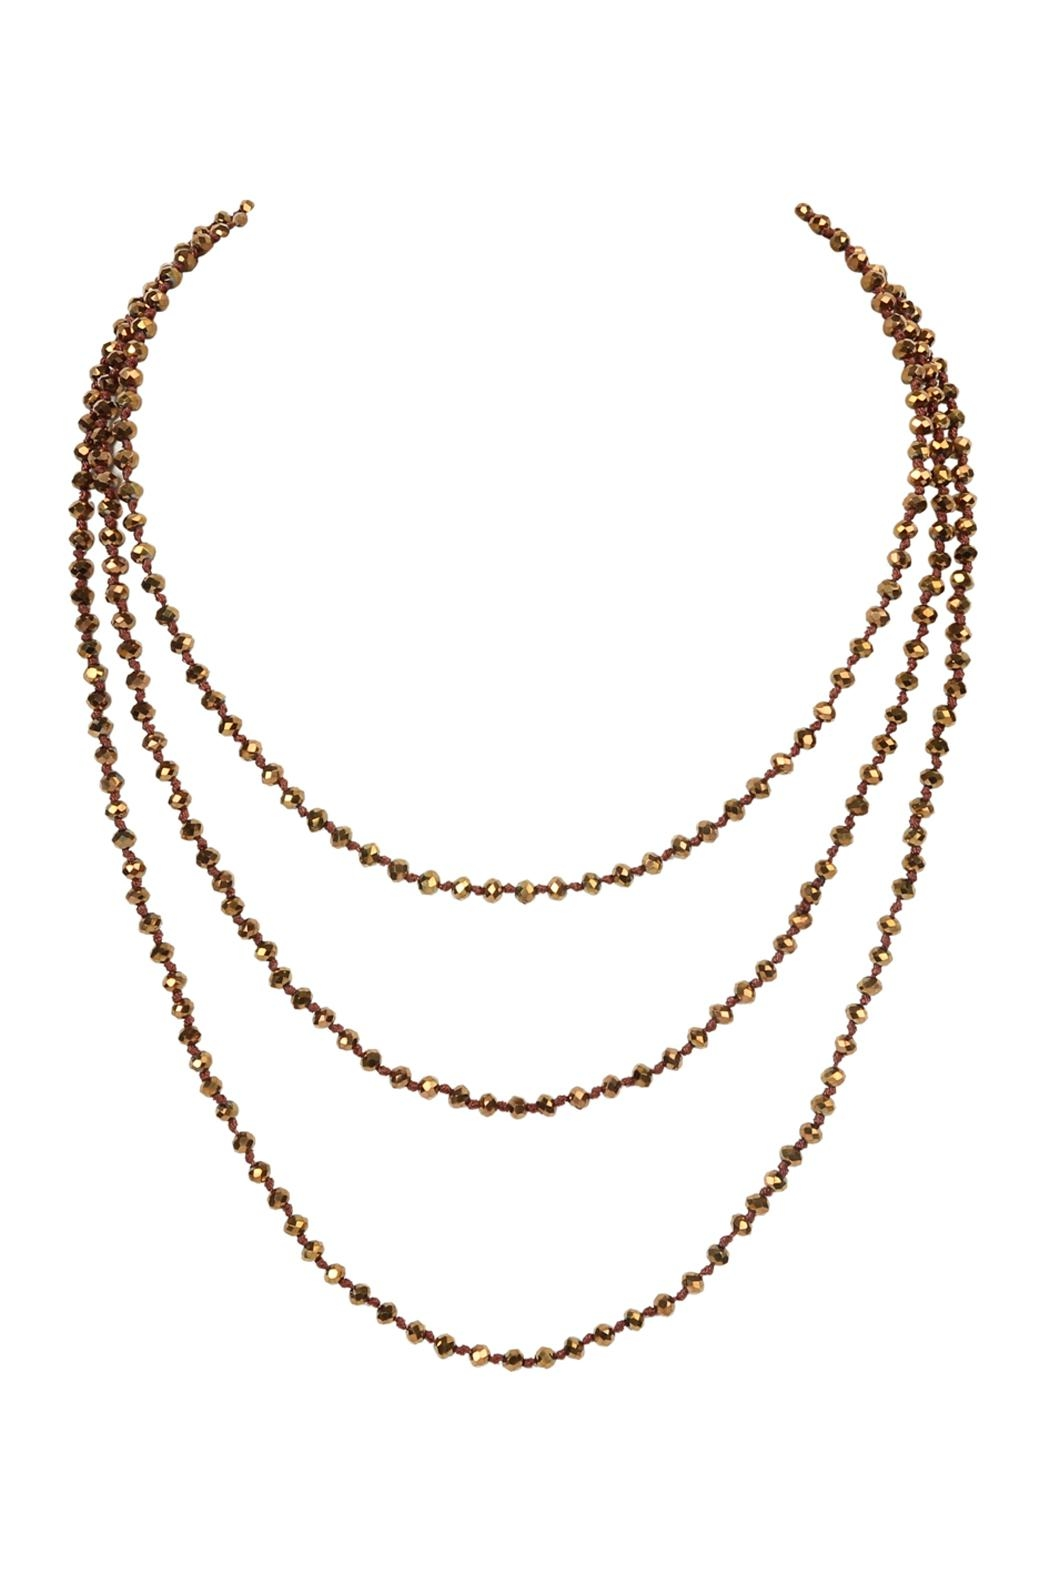 Riah Fashion Natural-Stone-Layered Beads-Necklace - Front Full Image